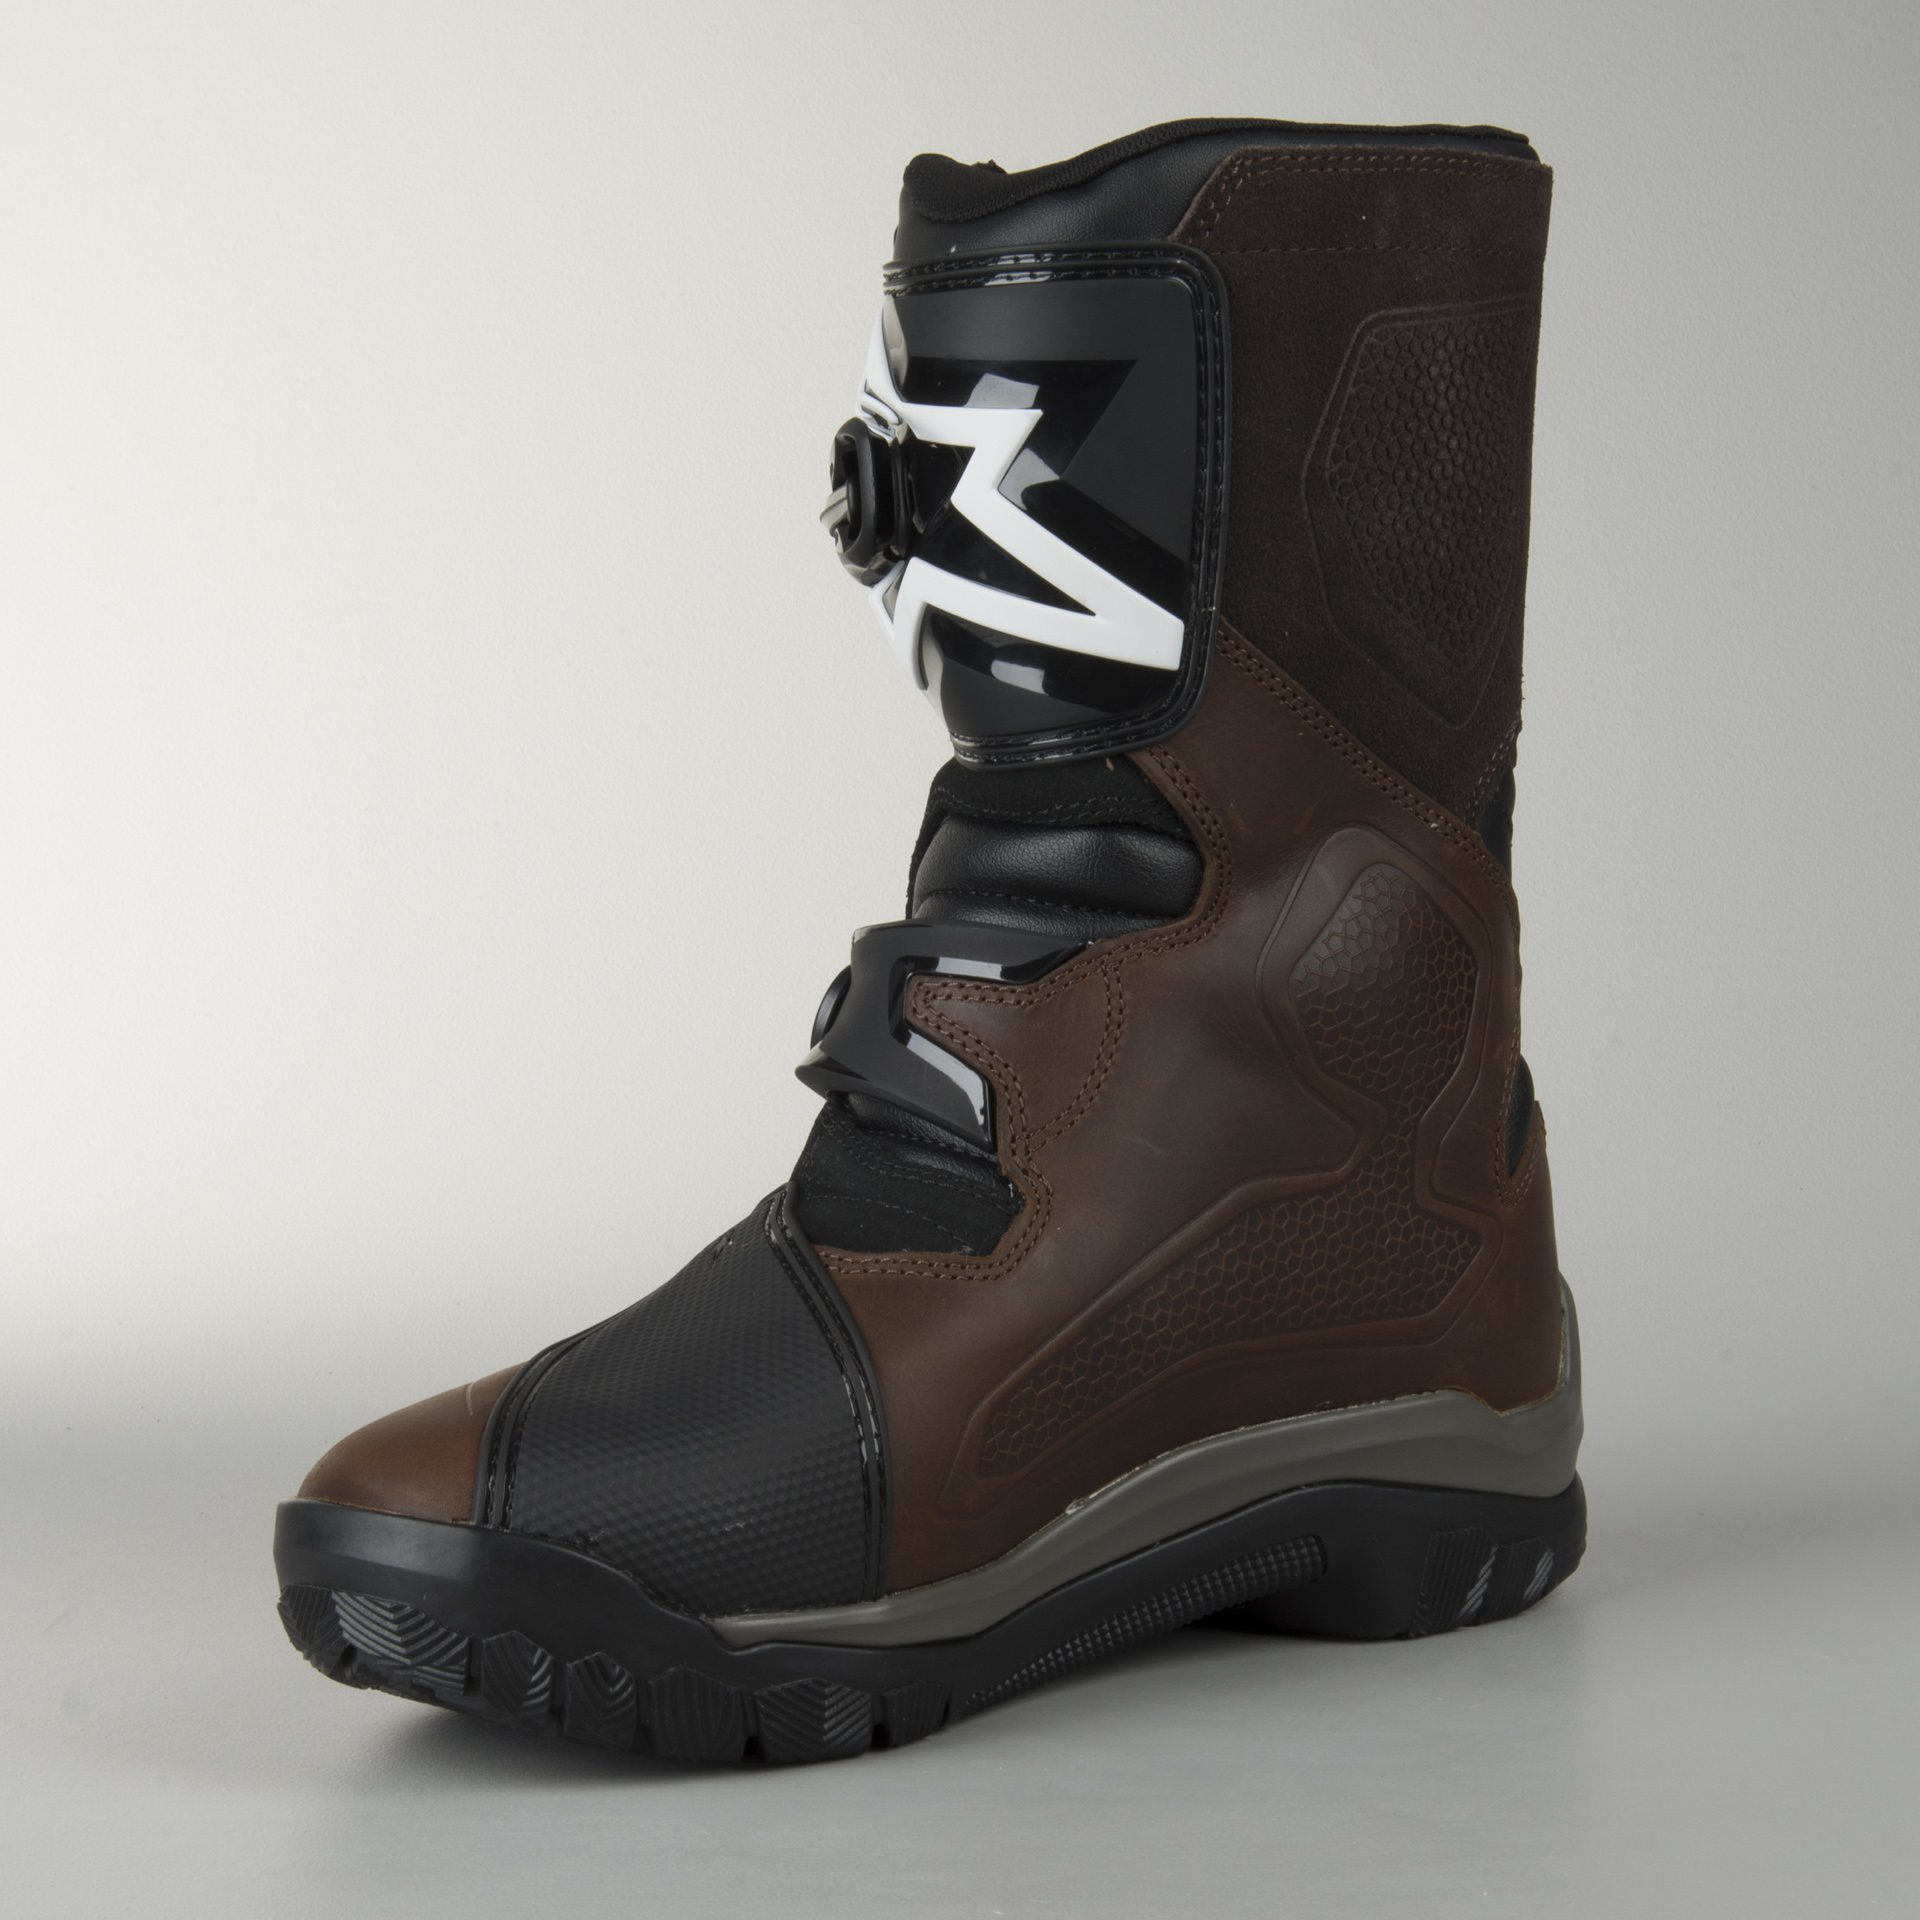 Brown US 9 ALPINESTARS BELIZE Drystar Oiled Leather Touring